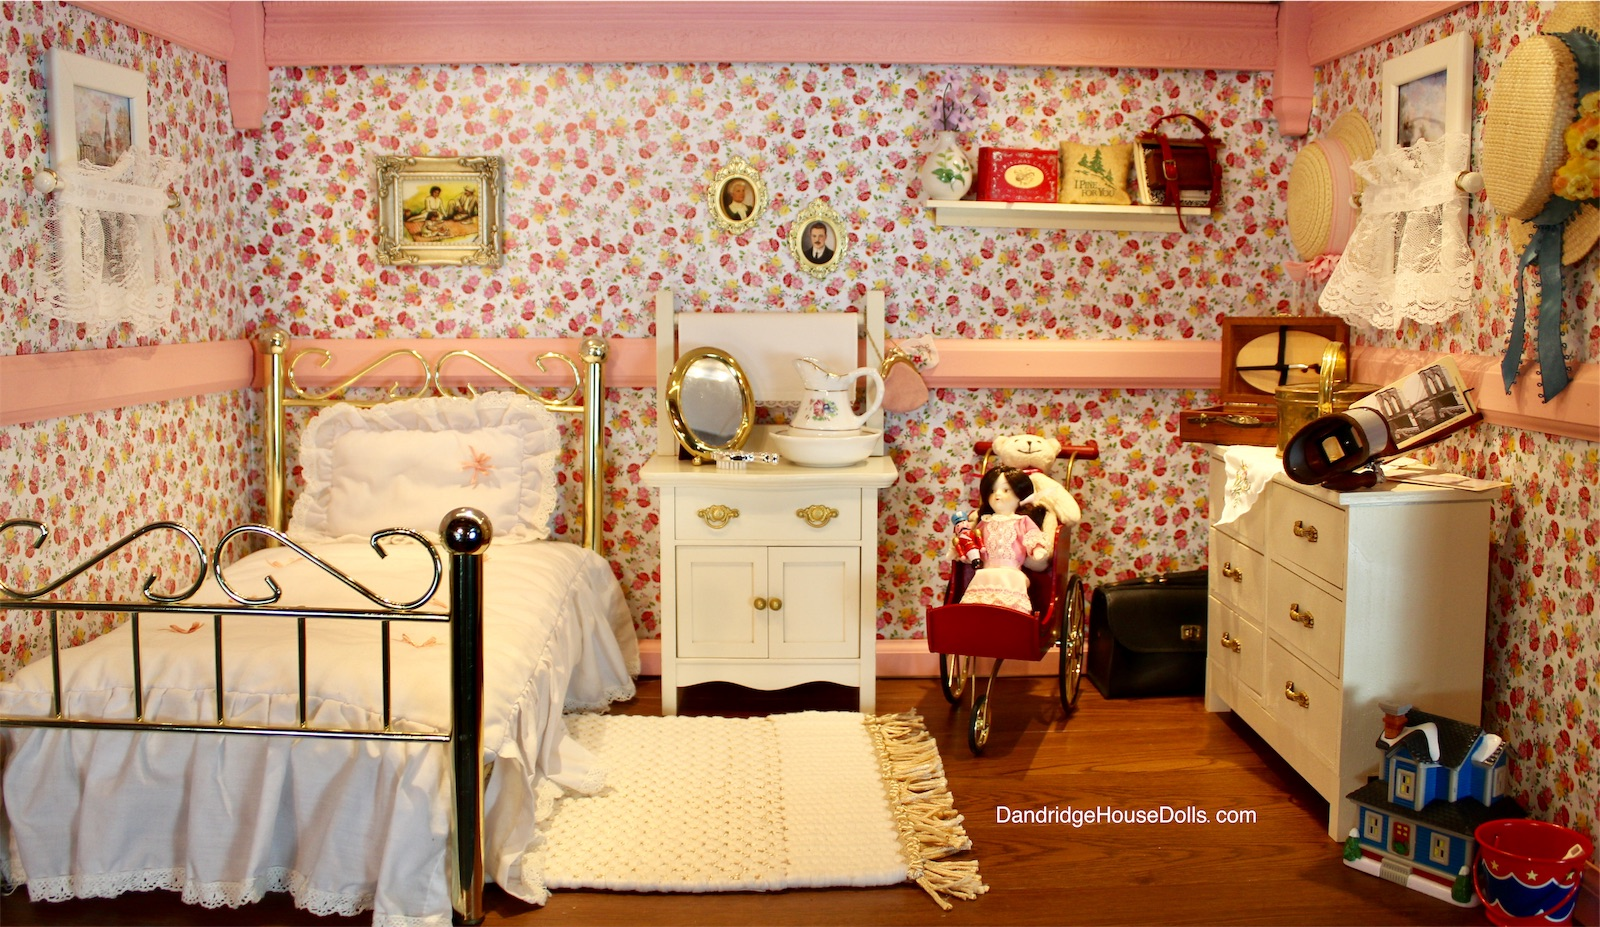 The bedroom American girl dollhouse lit up | American girl